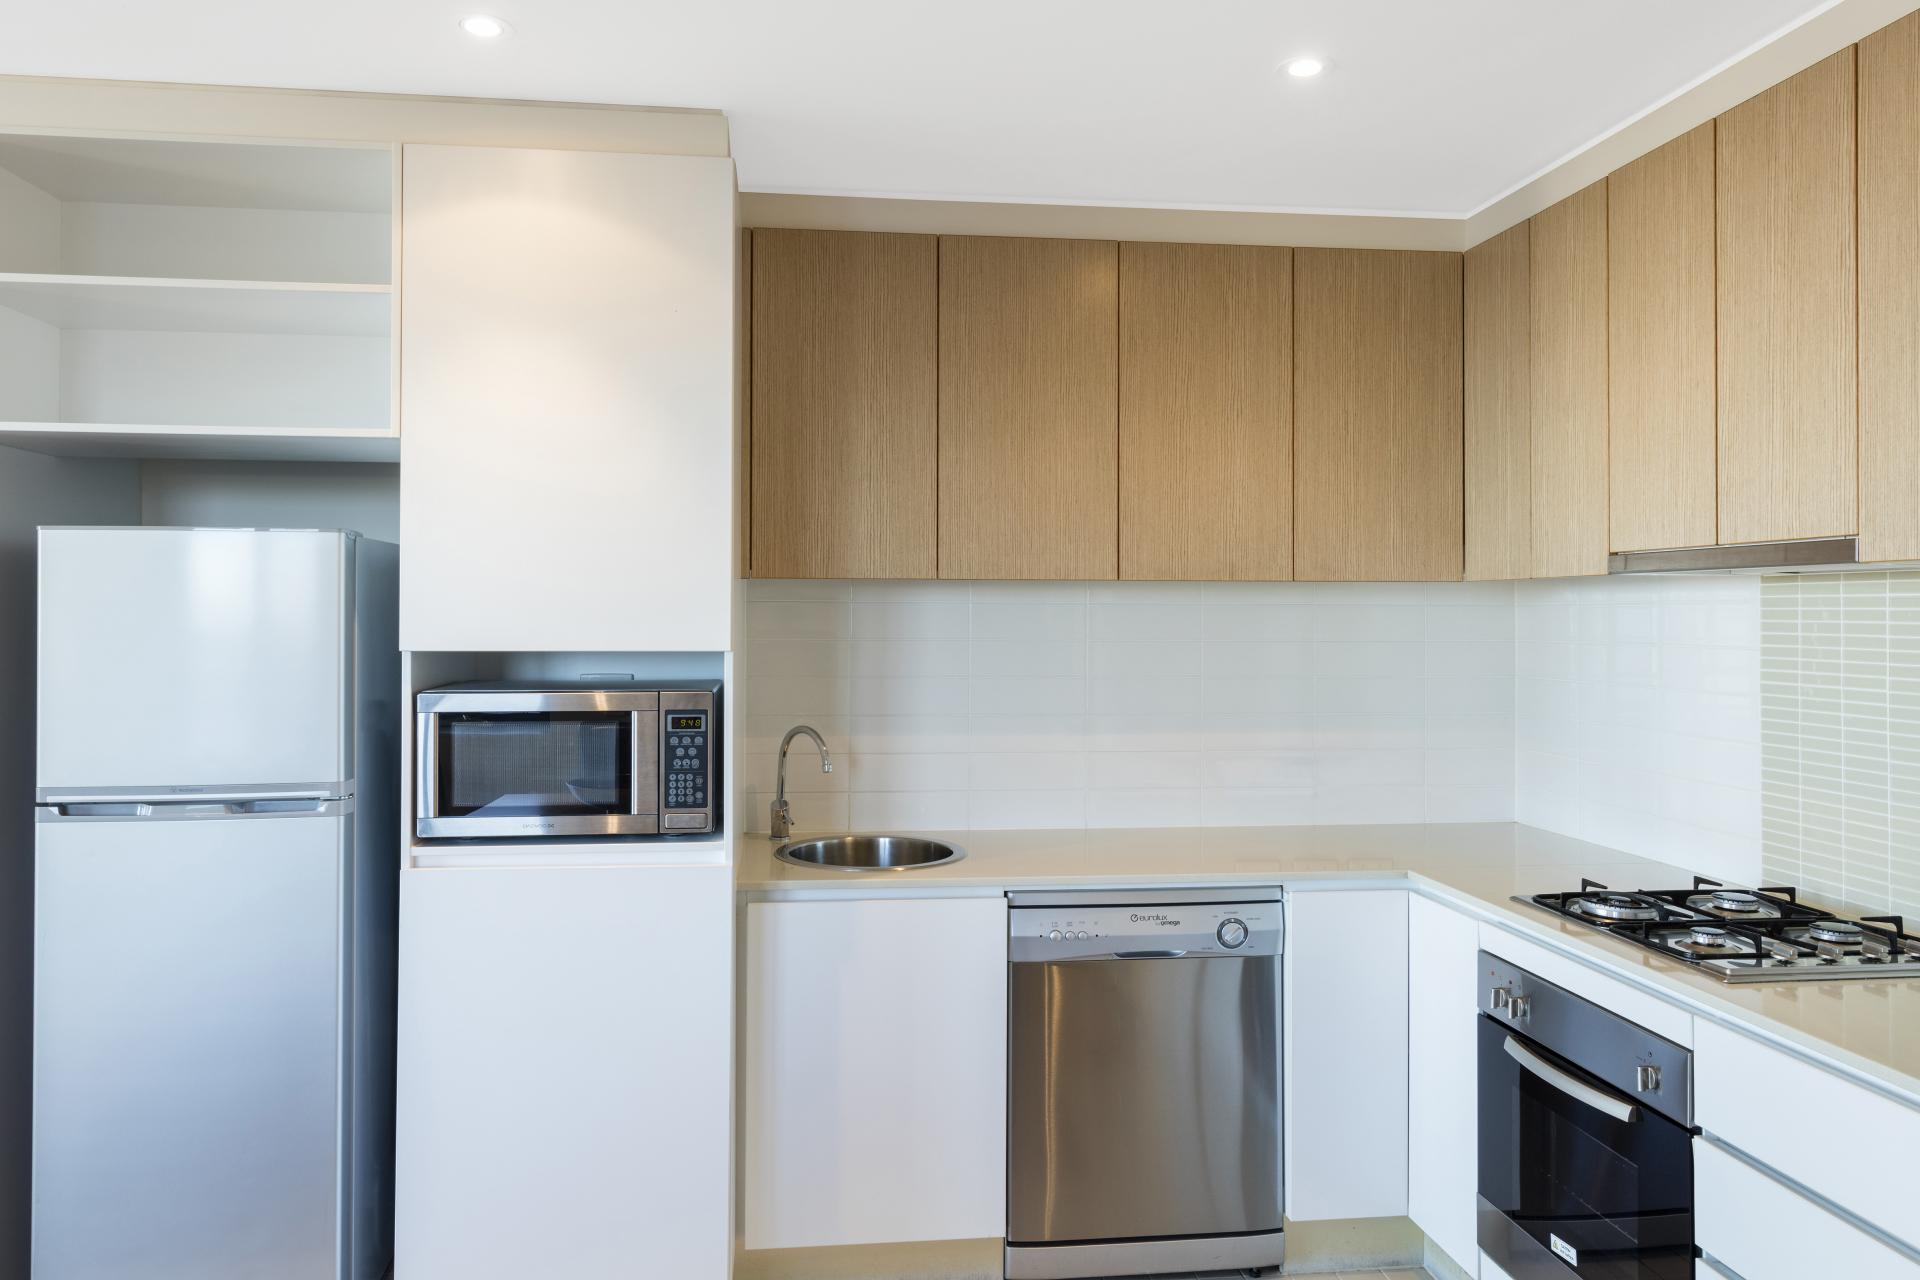 Kitchen at iStay Precinct Adelaide Apartments